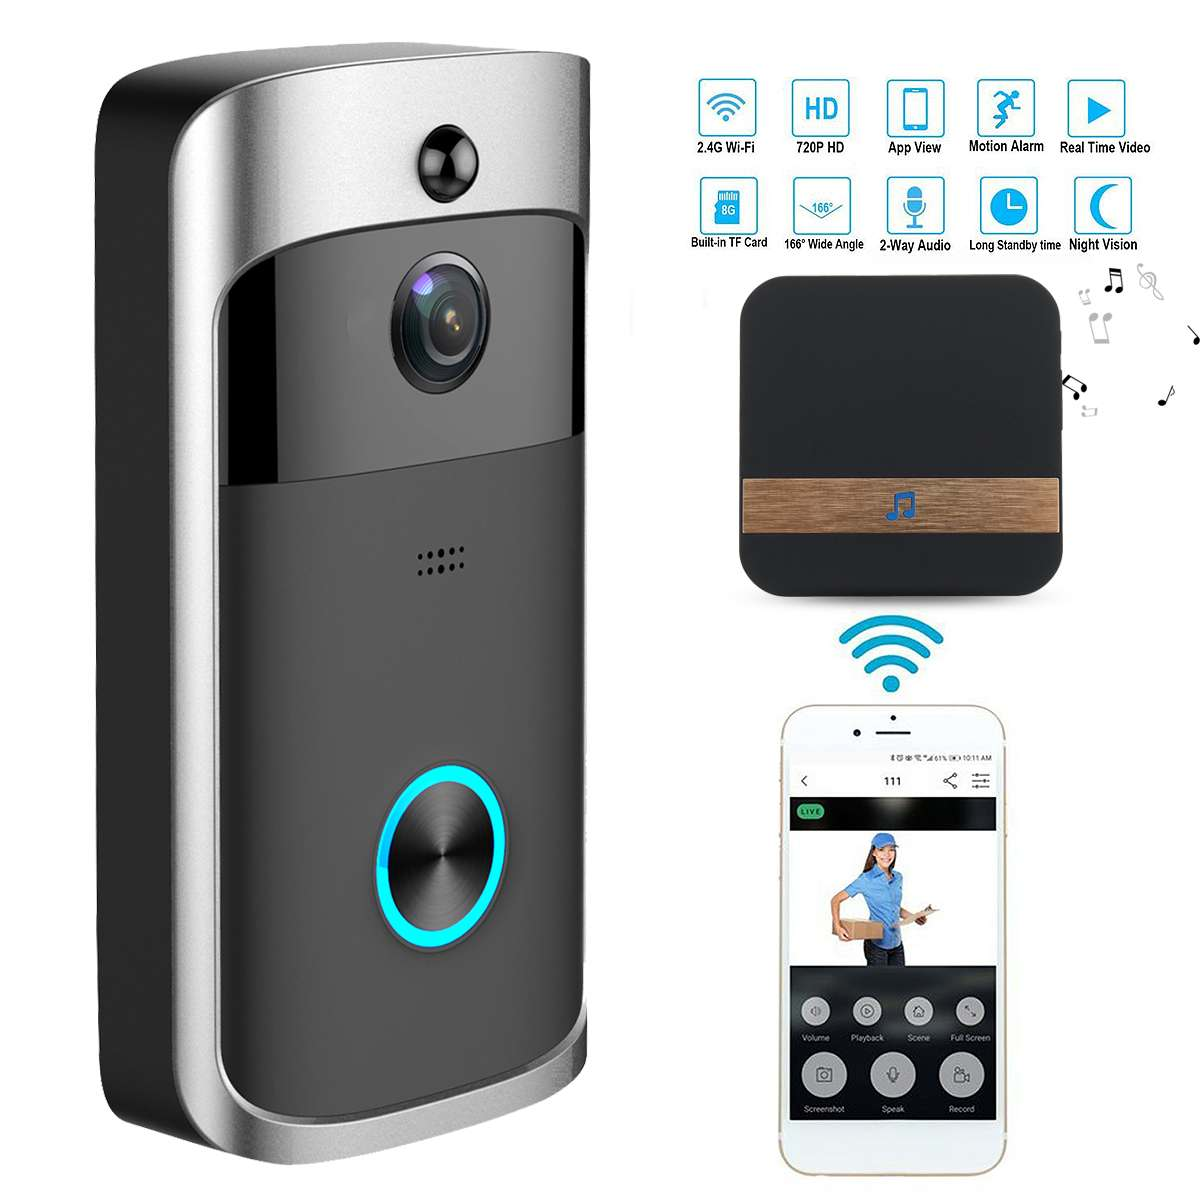 цена на Wireless Camera Video Doorbell Home Security WiFi Smartphone Remote Video Rainproof Night Vision Alarm Doorbell